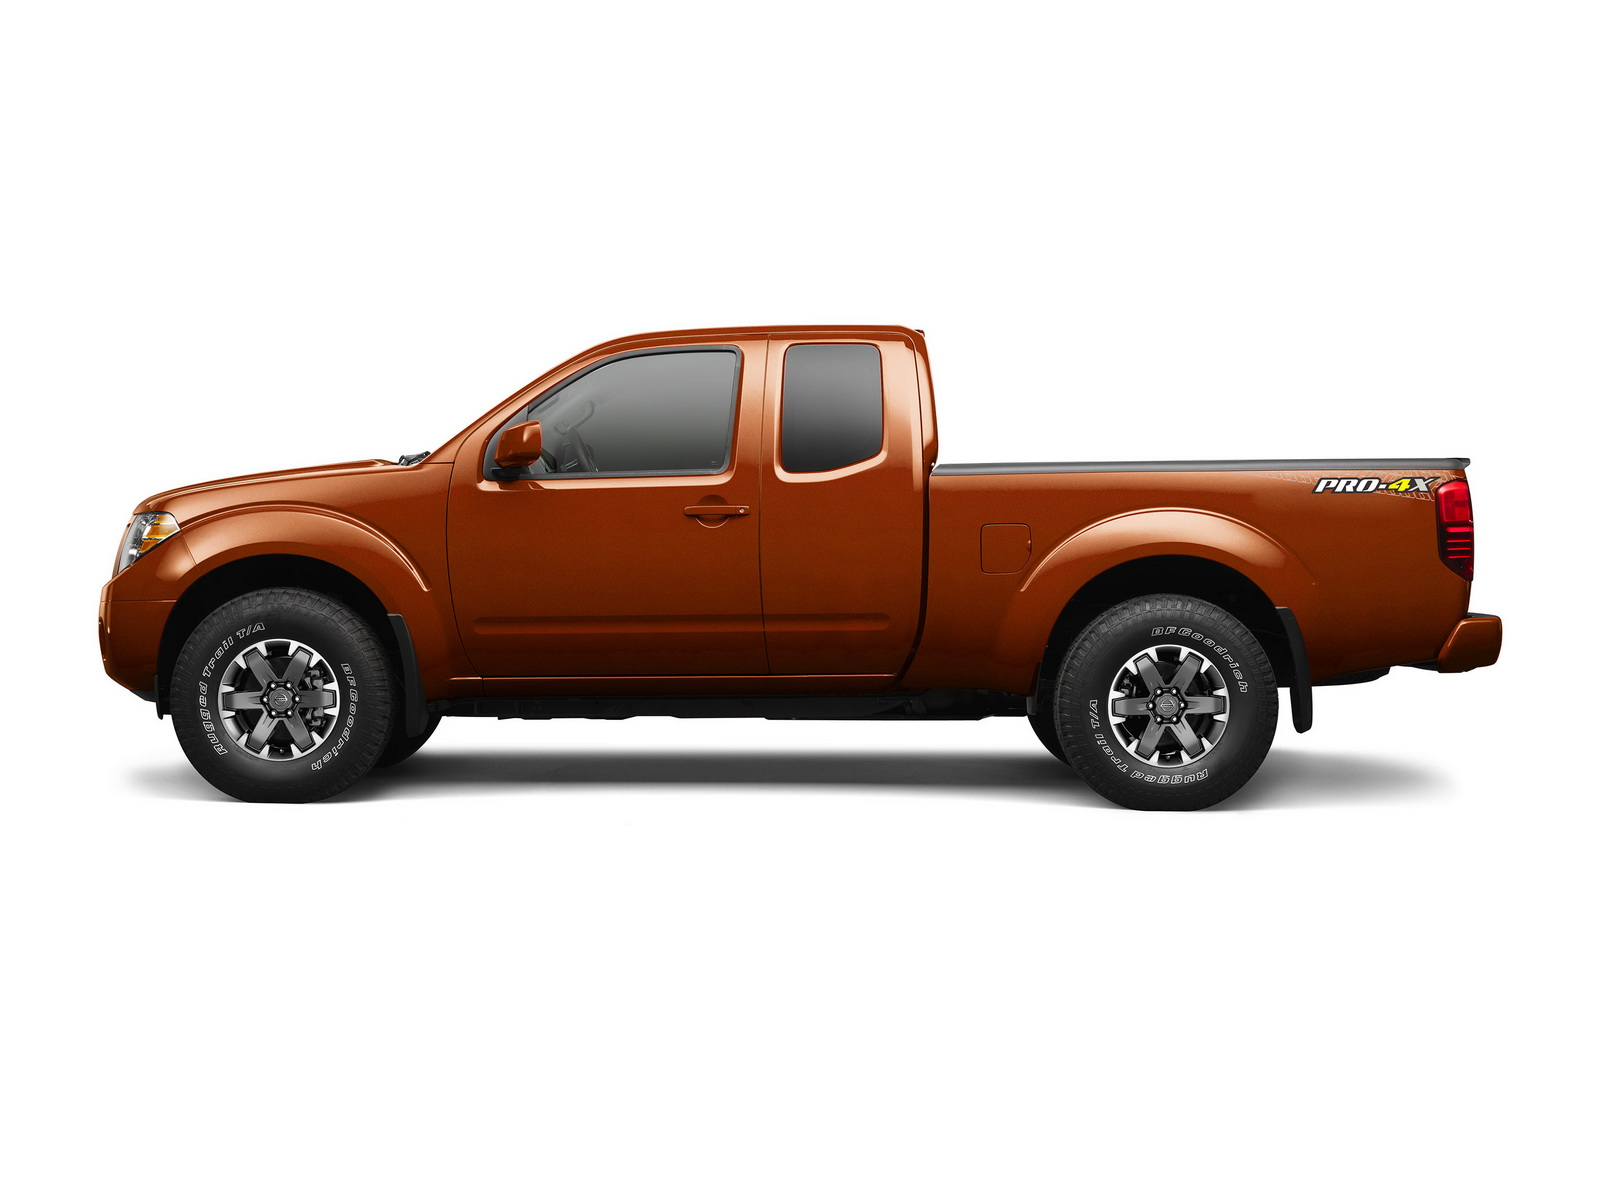 2017 nissan frontier goes on sale in the us priced from 19 330 carscoops. Black Bedroom Furniture Sets. Home Design Ideas